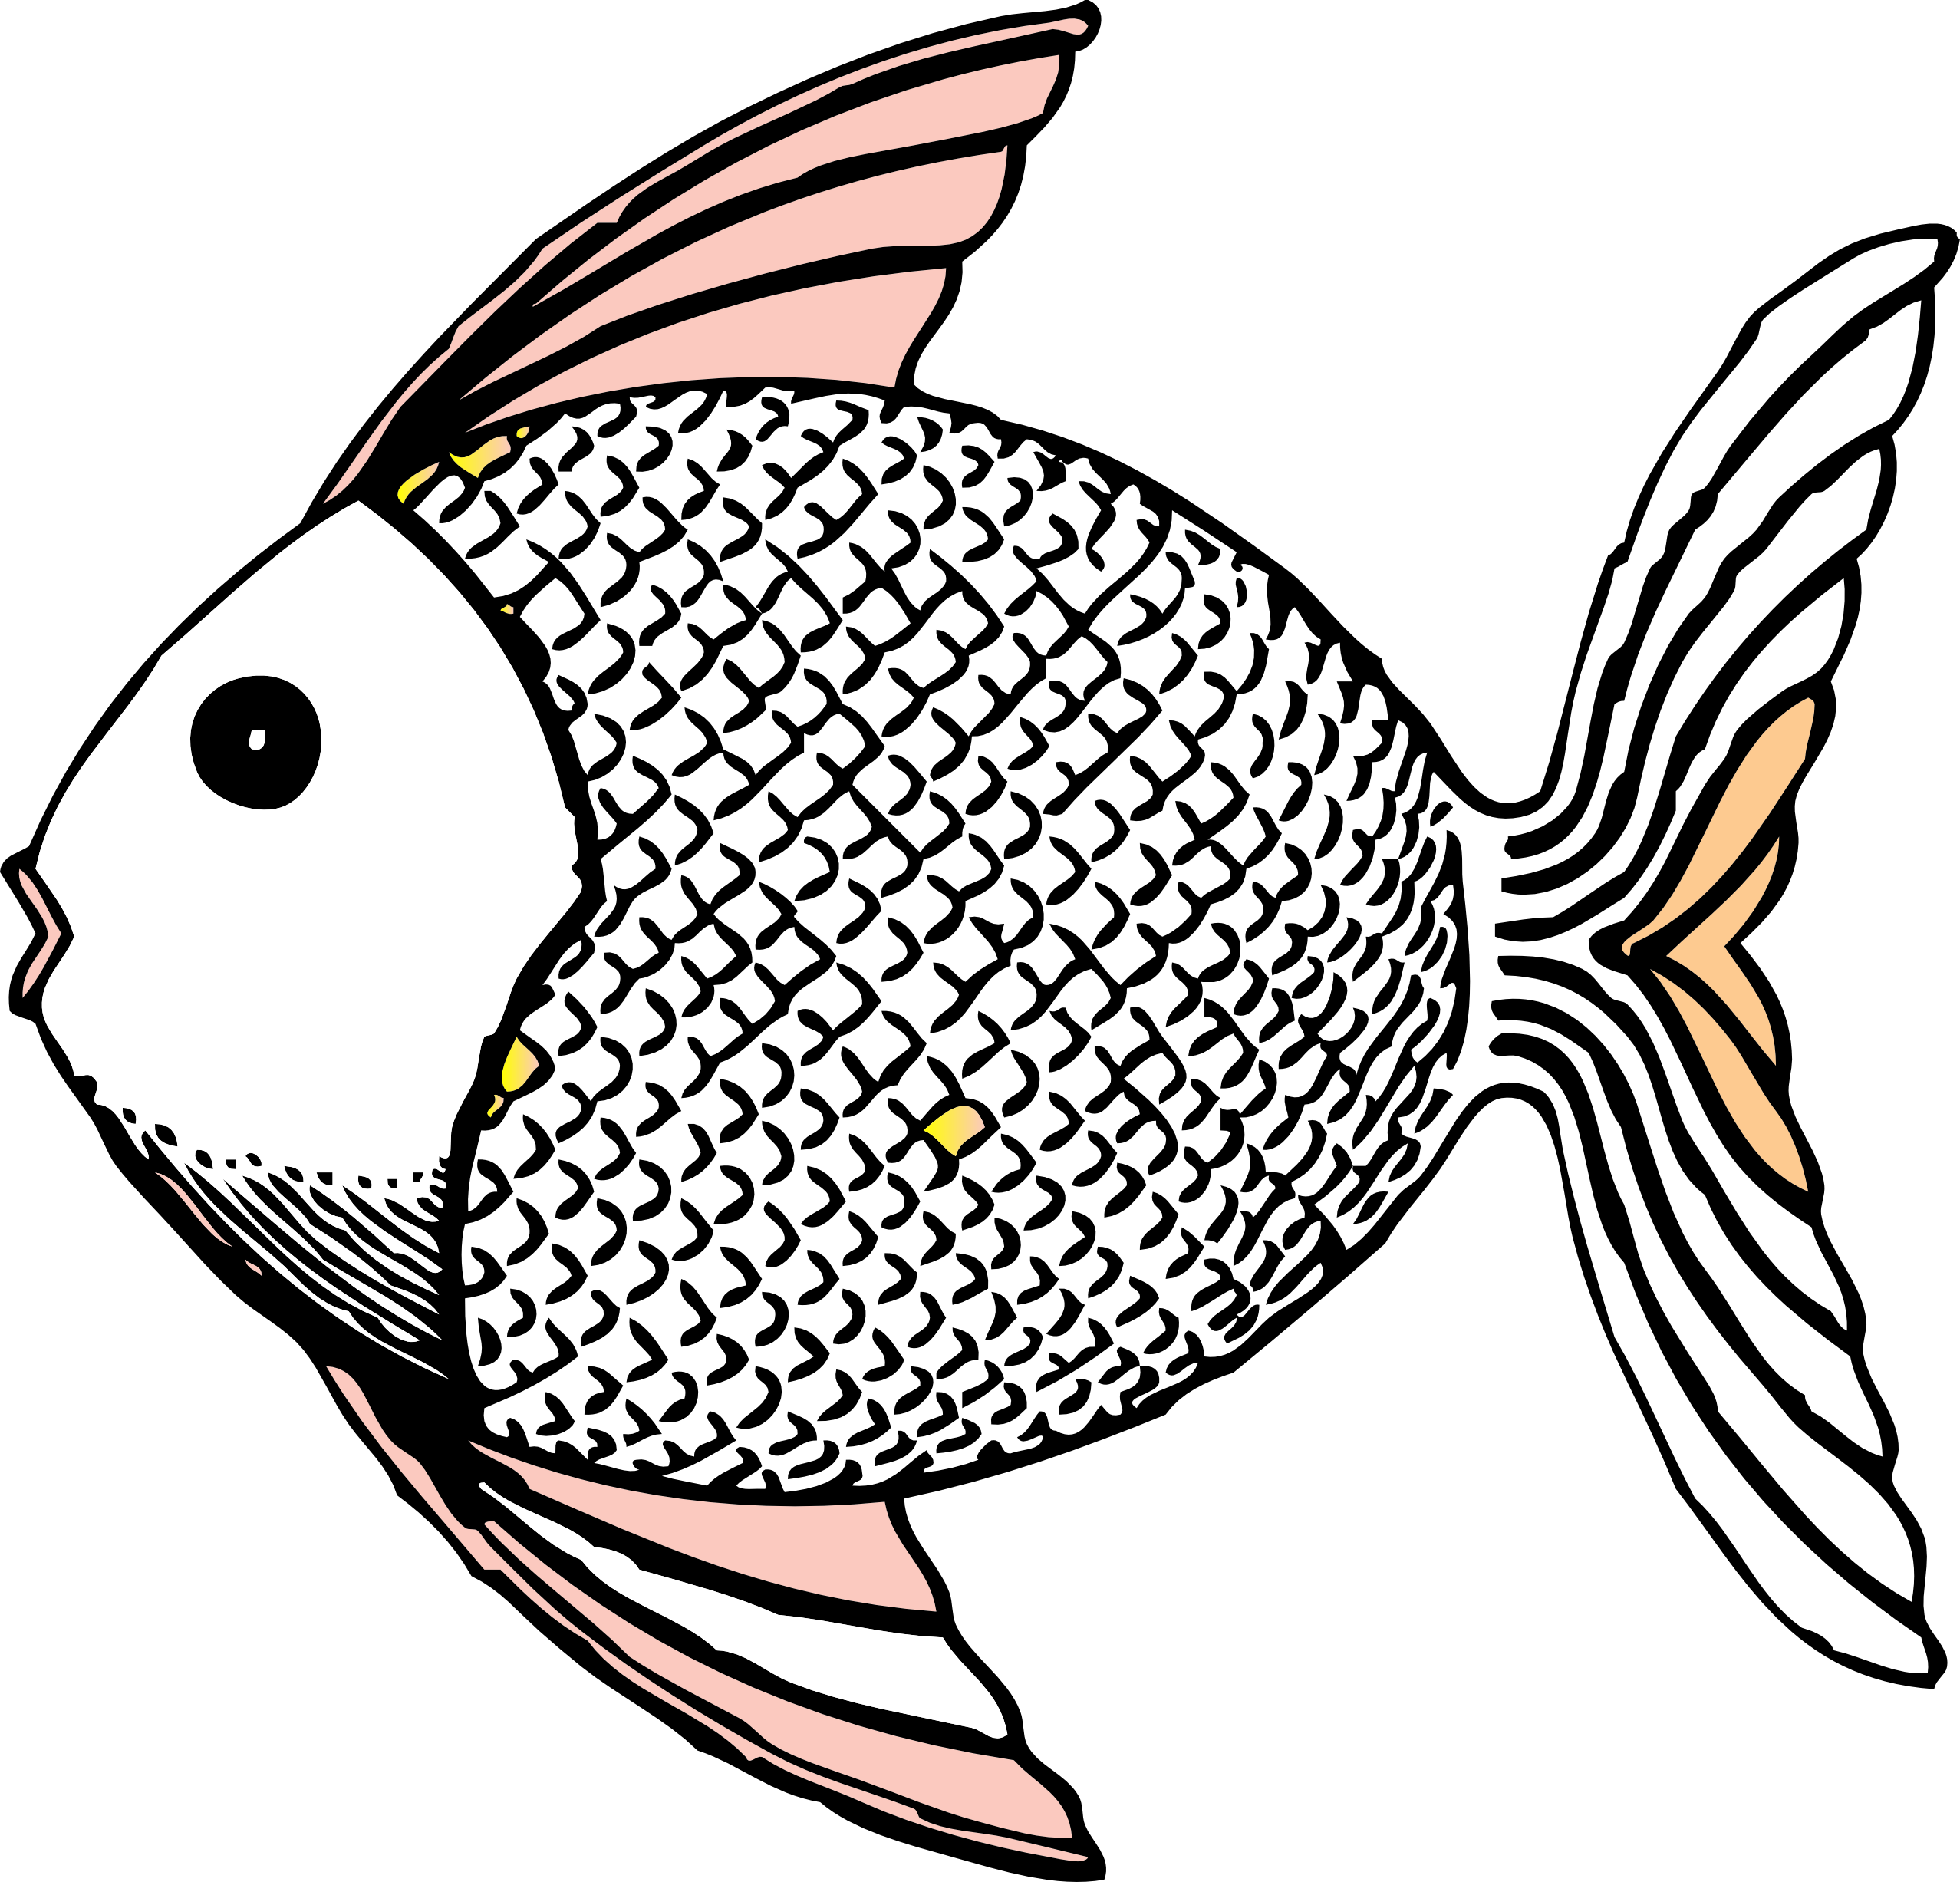 Fish kiss clipart. Clip art black and